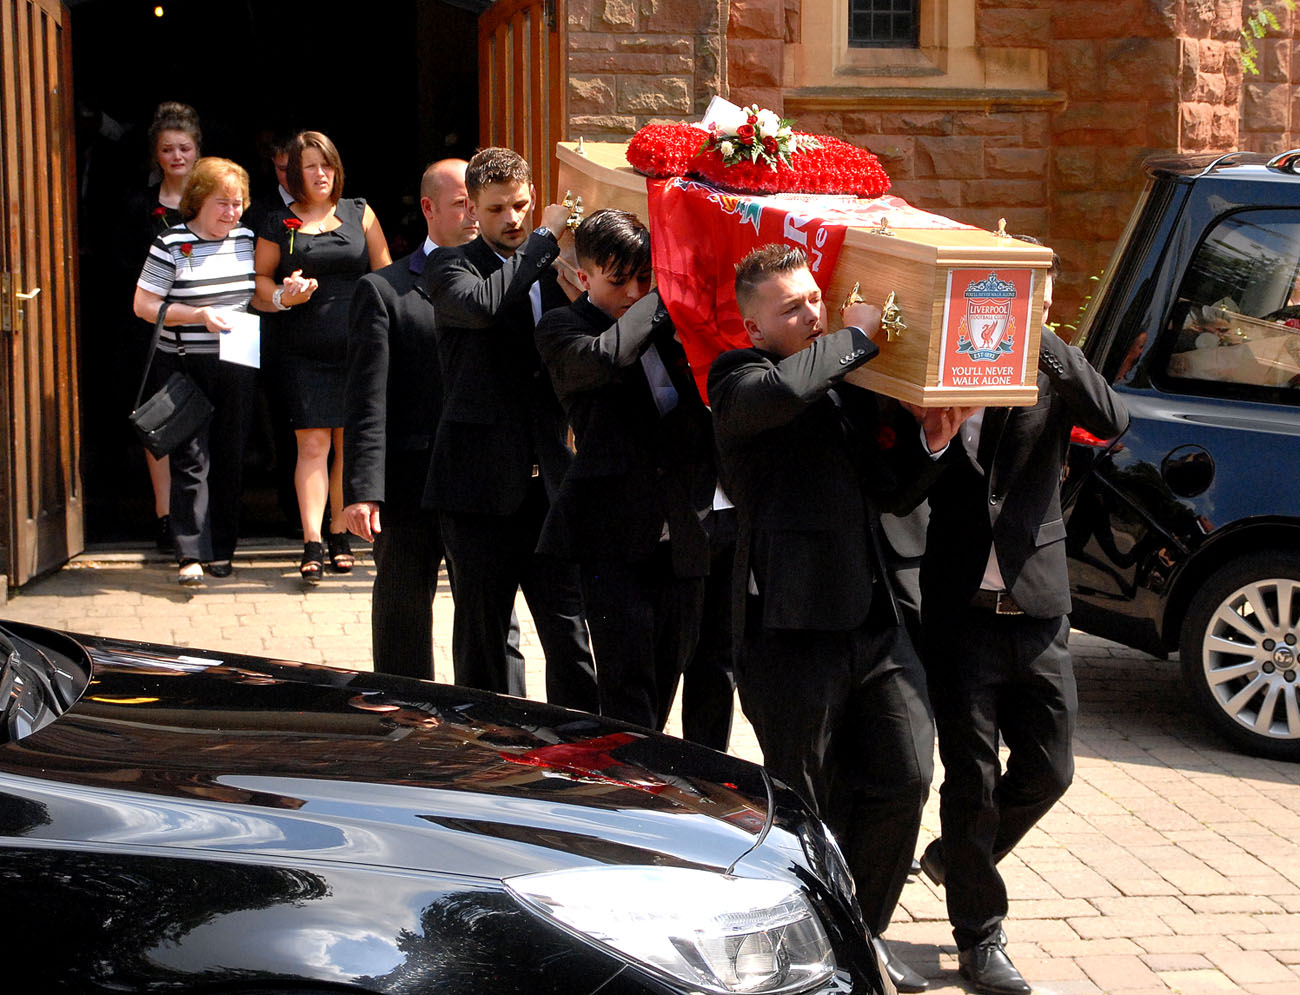 Family carry out the coffin at the funeral of Russell O'Neill